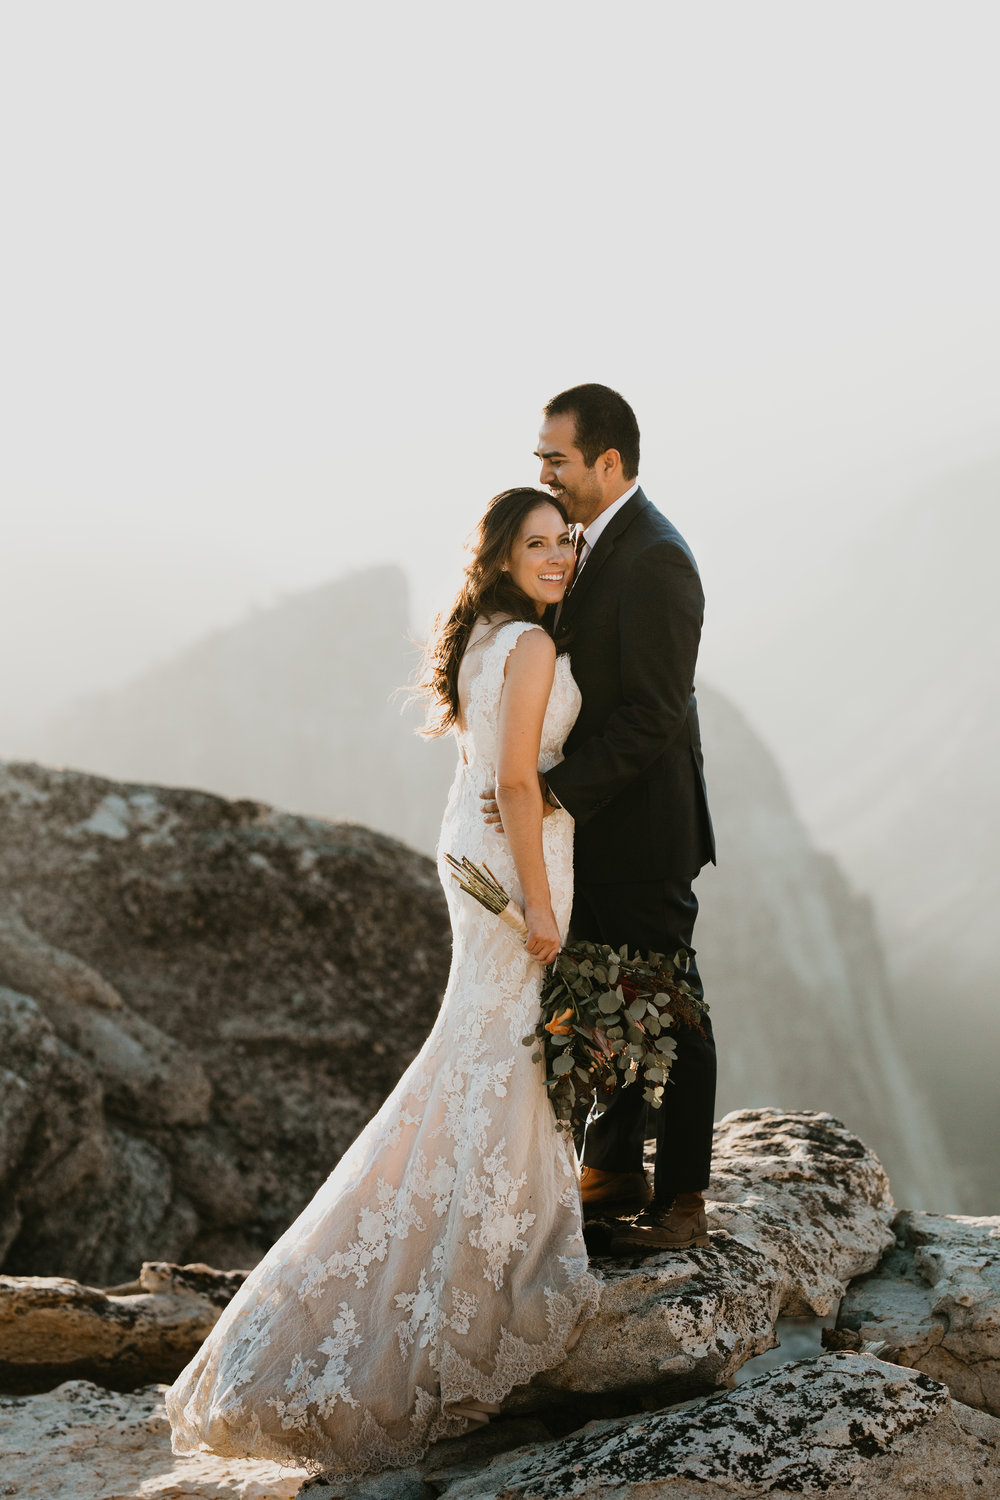 nicole-daacke-photography-intimate-elopement-wedding-yosemite-national-park-california-taft-point-sunset-photos-yosemite-valley-tunnel-view-first-look-sunrise-golden-granite-hiking-adventure-wedding-adventurous-elopement-photographer-93.jpg